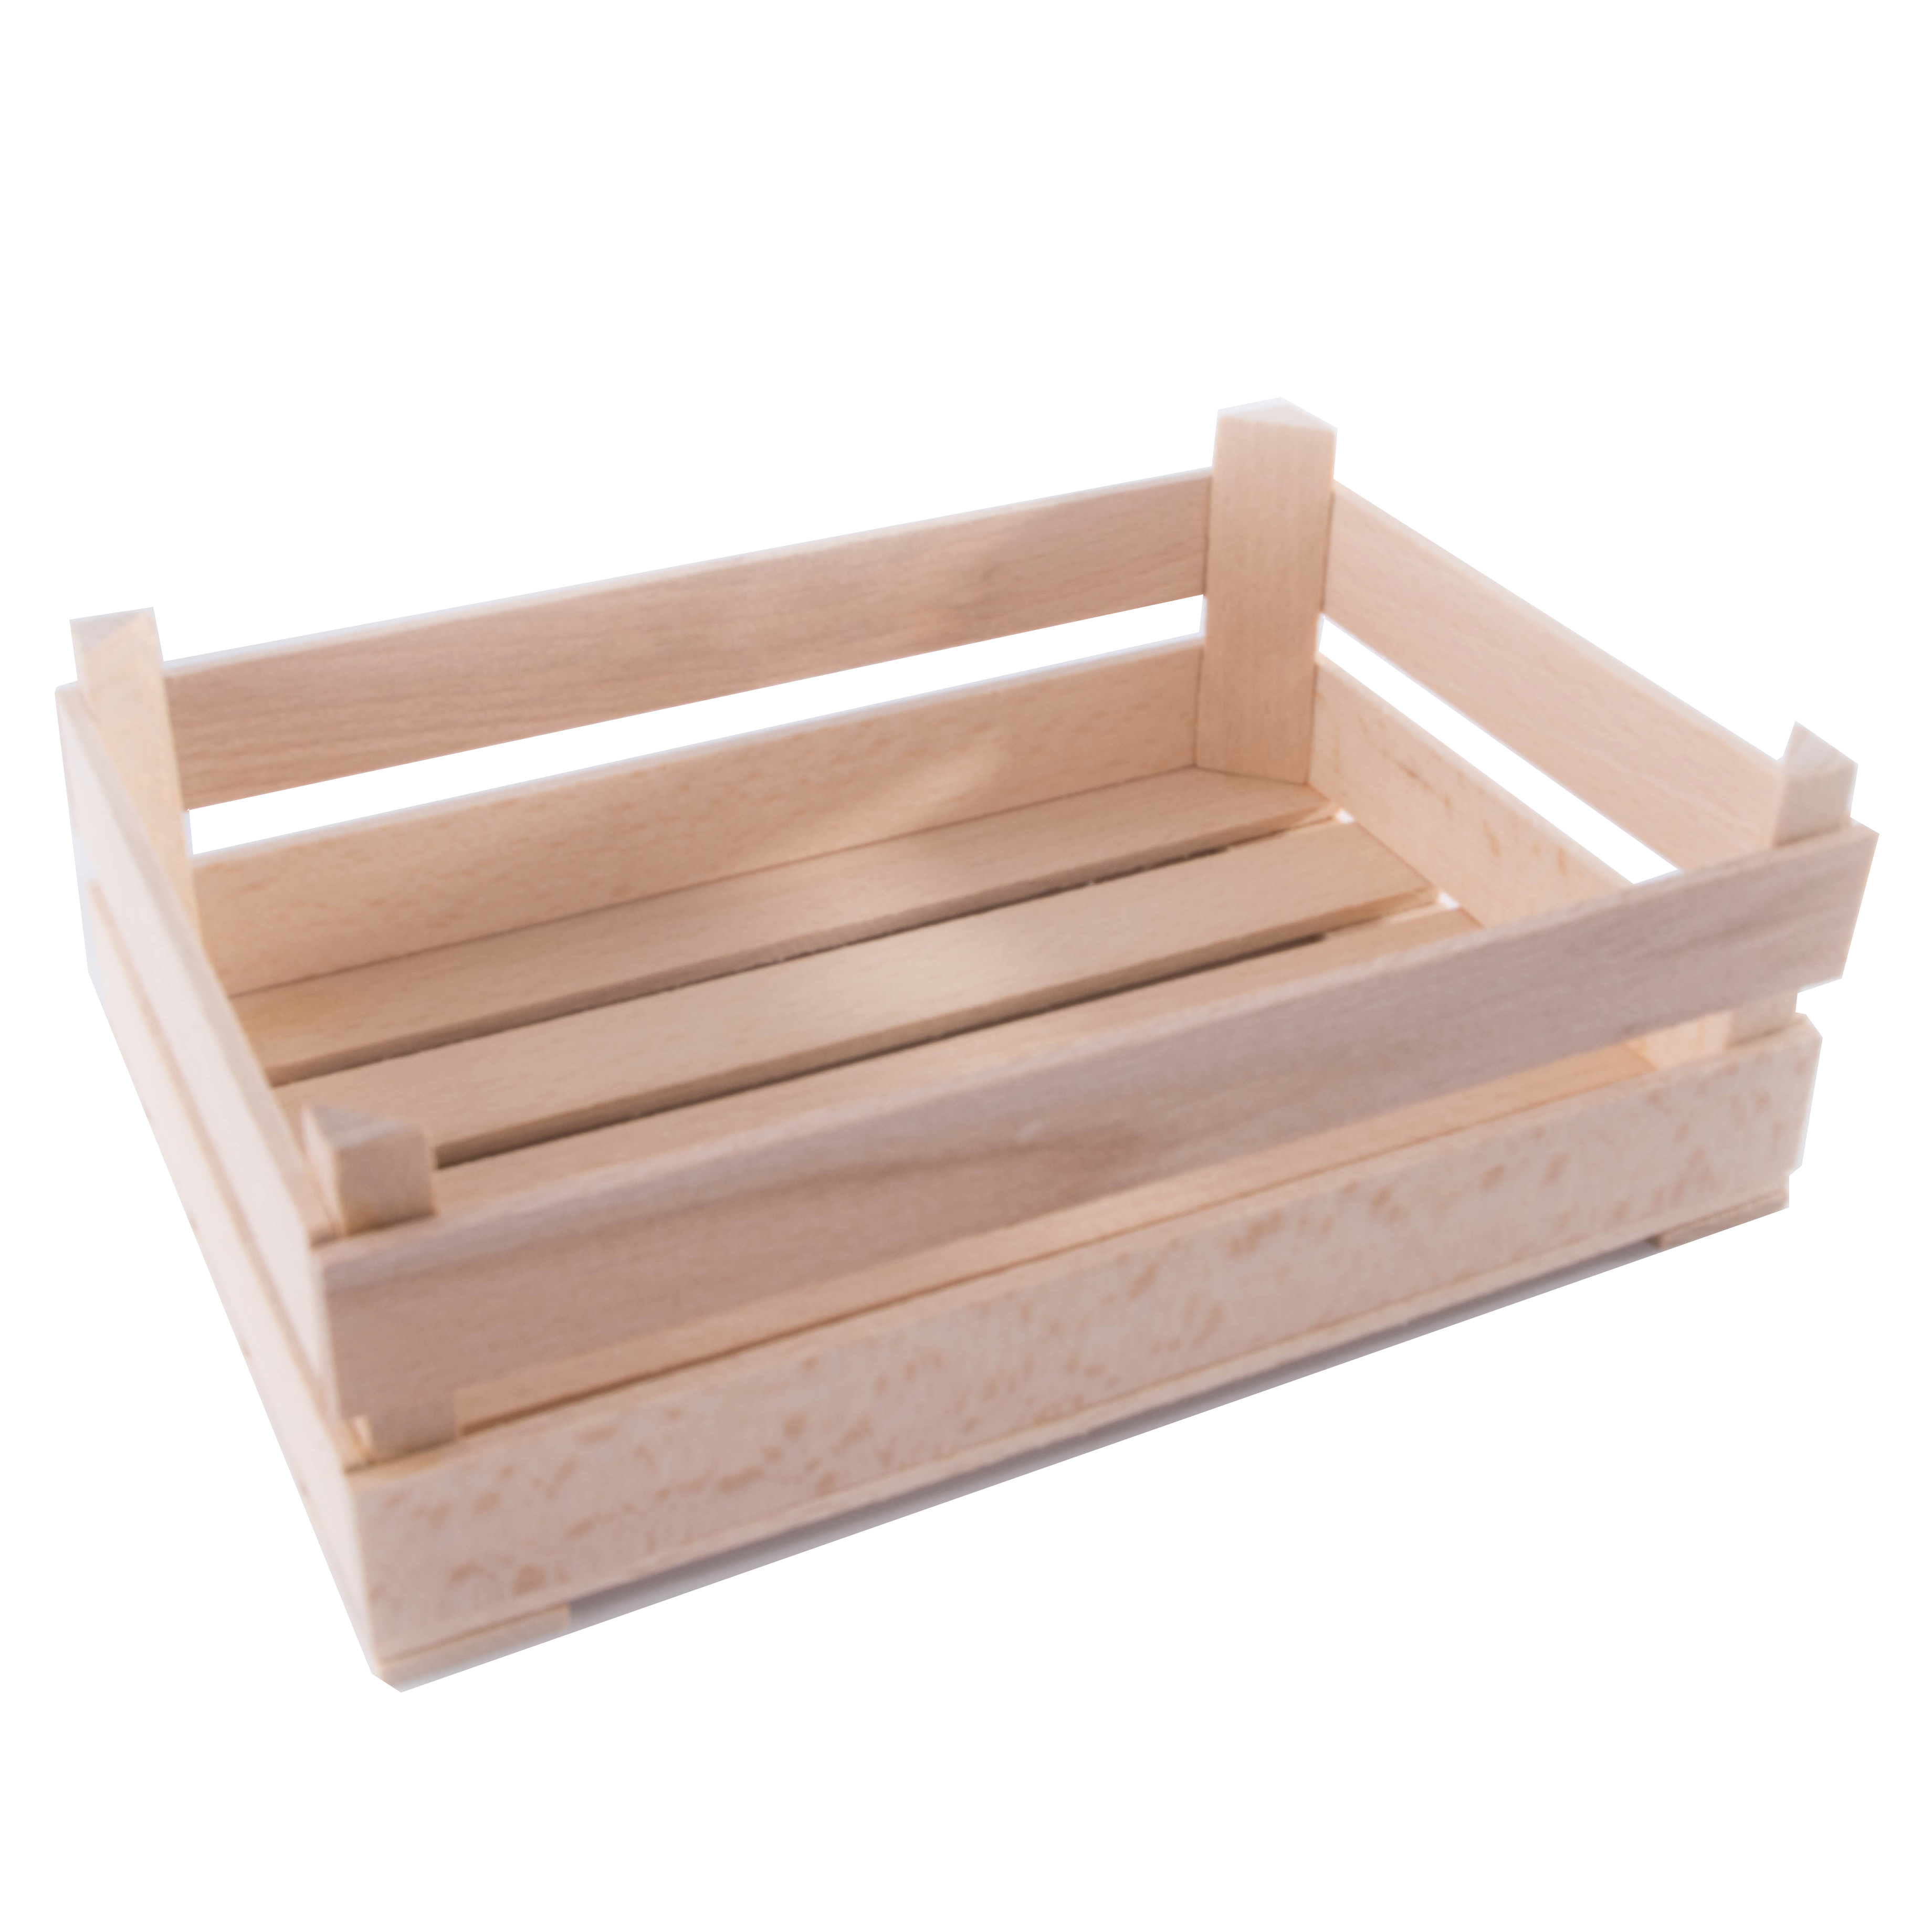 Details About Wooden Decorative Extra Small Little Cute Mini Little Crates 175 X 120 X 60 Mm